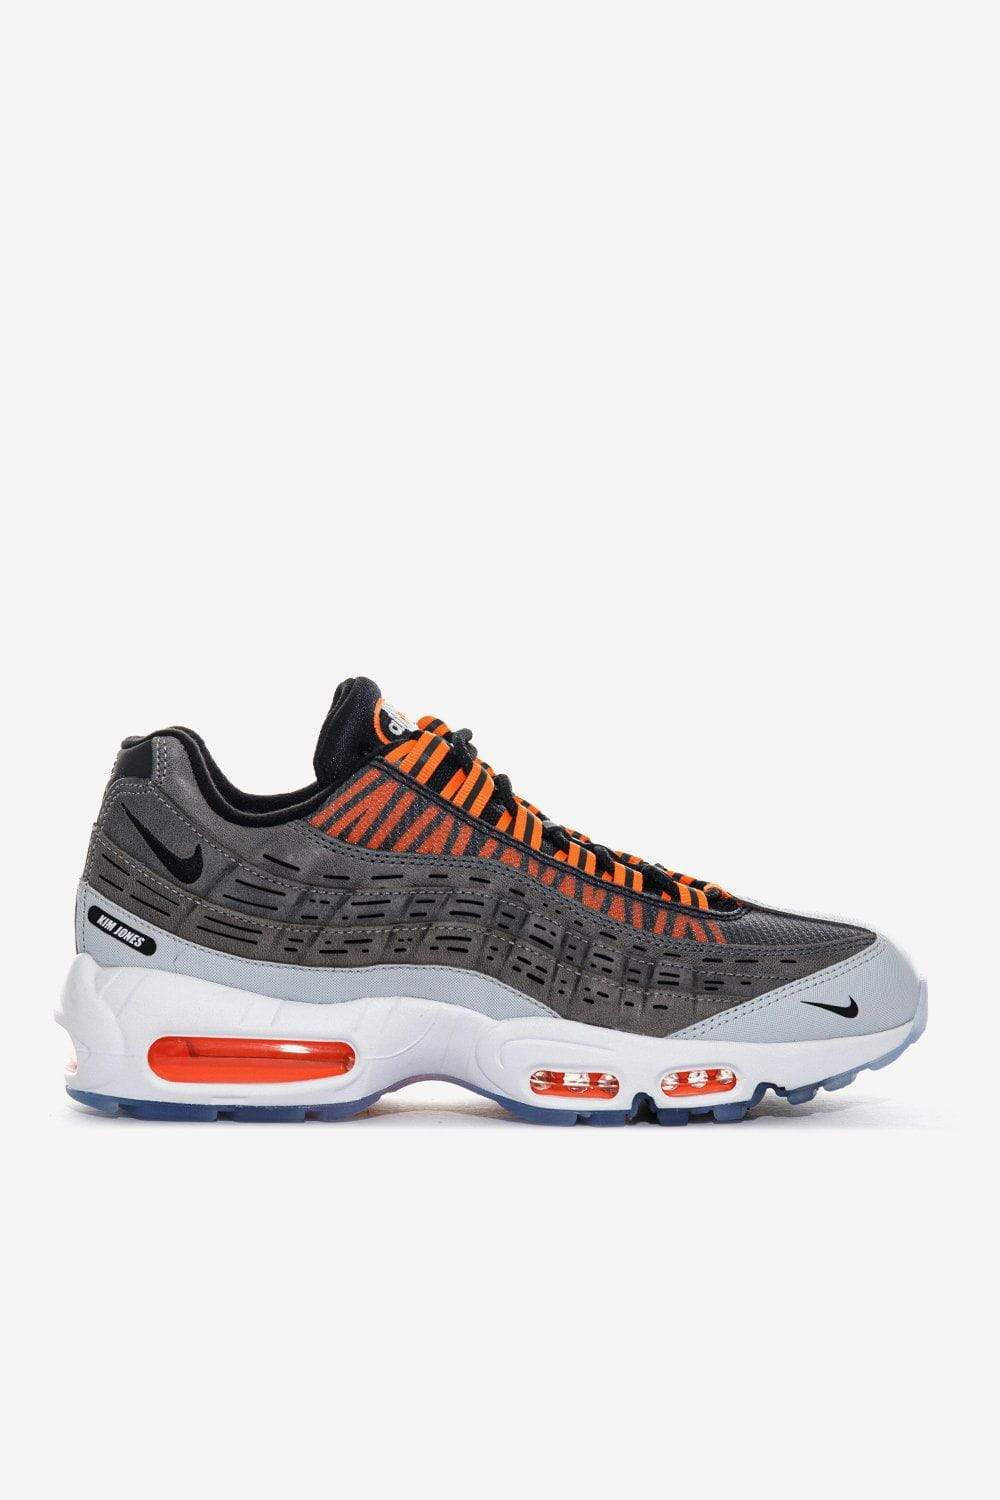 Nike Footwear Kim Jones x Nike Air Max 95 'Total Orange'